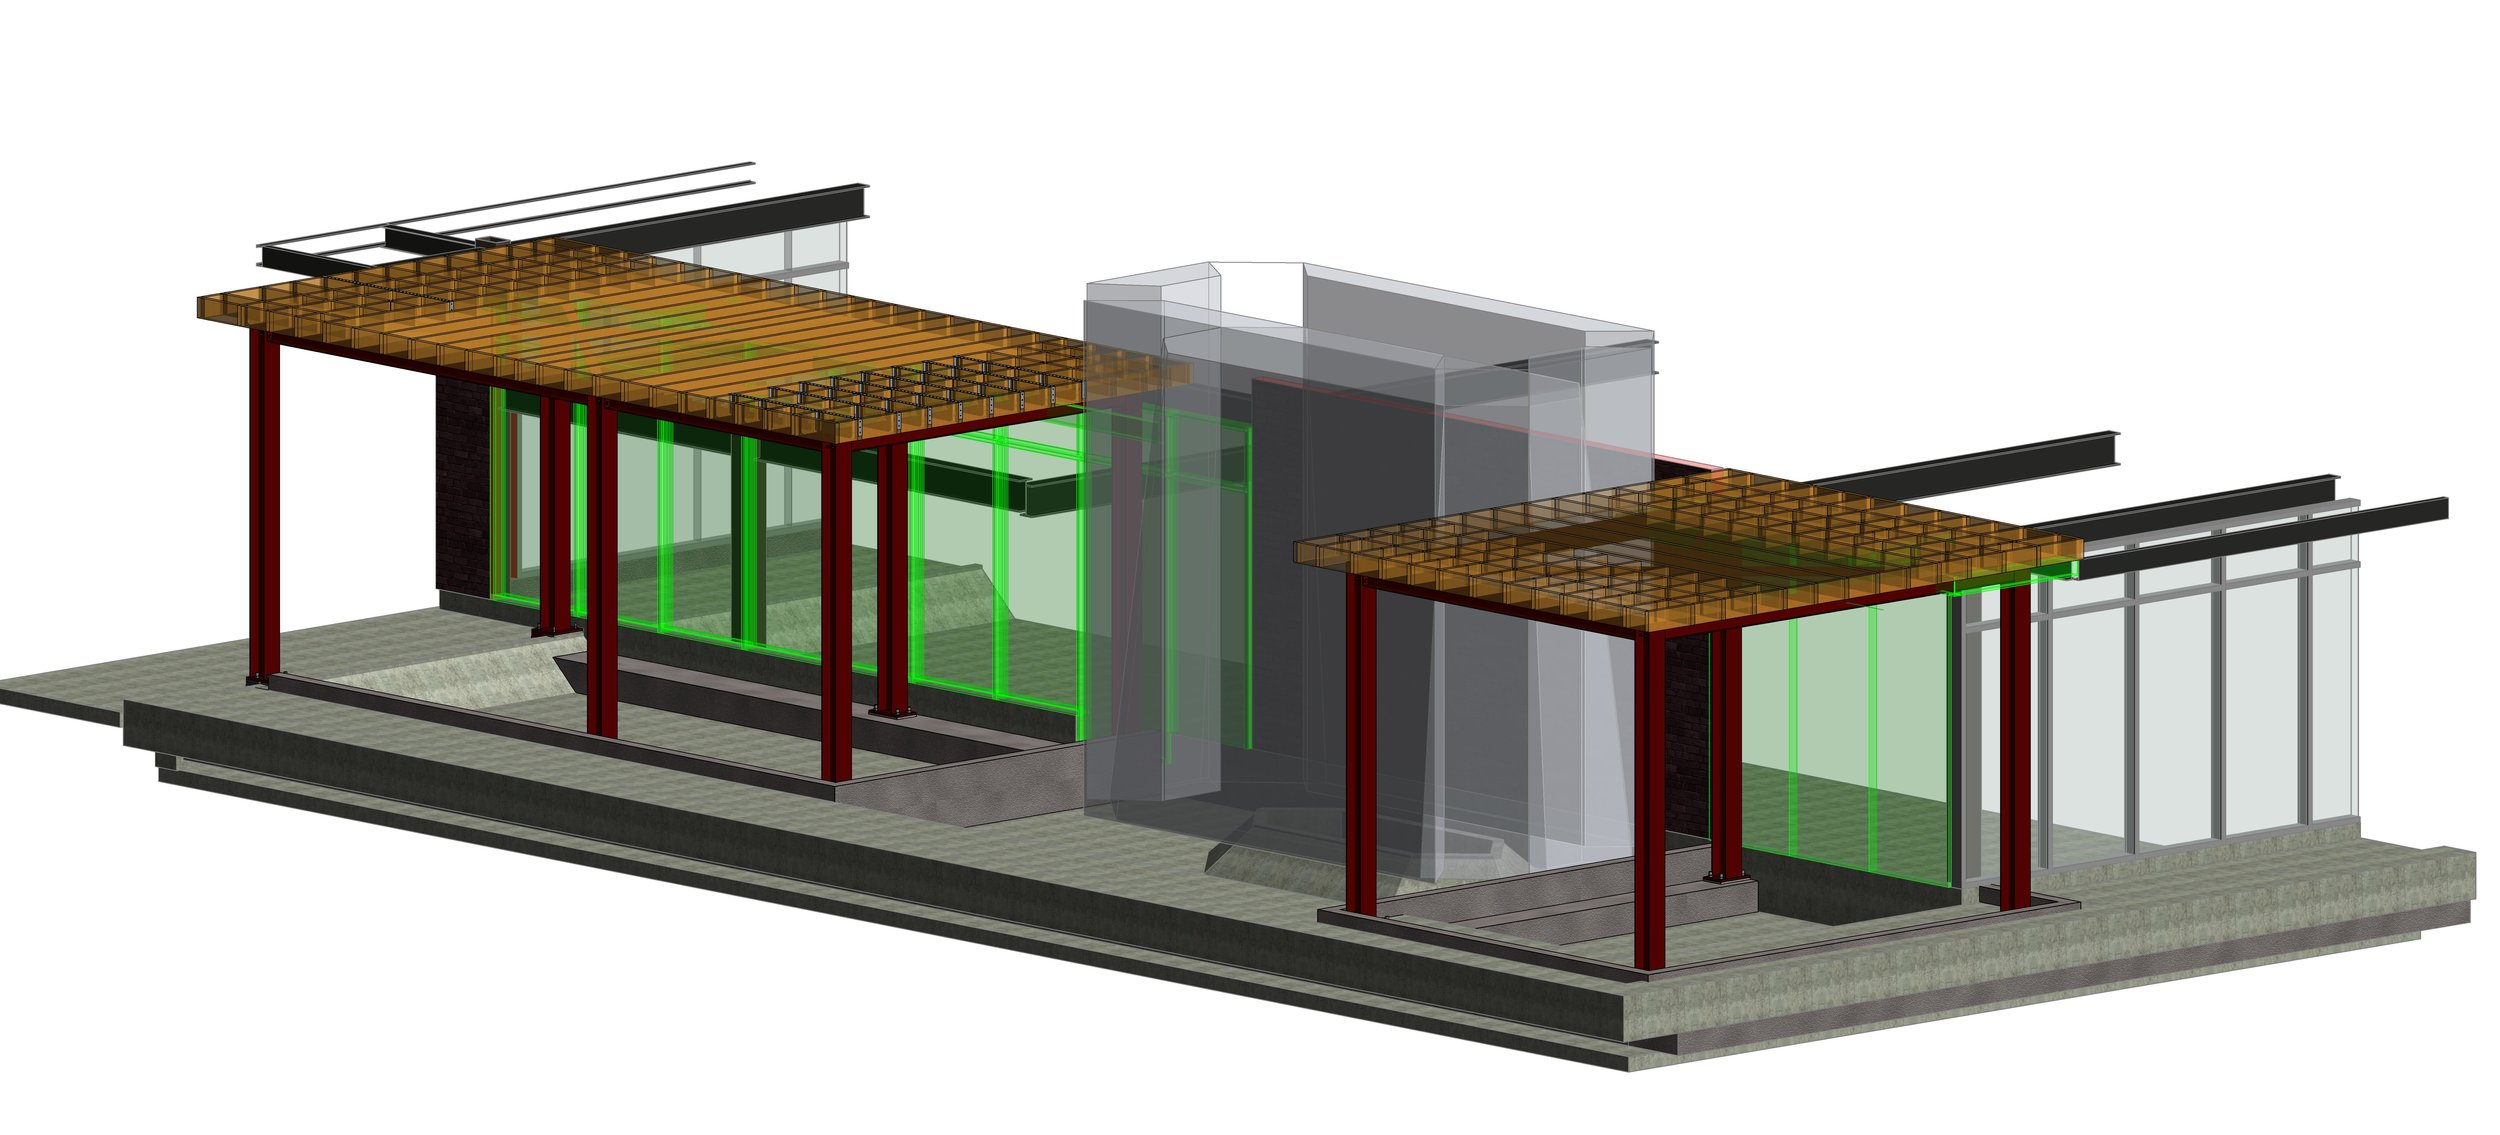 ENG-DWG-VED-VC0503 - 3D View - 3D View.jpg